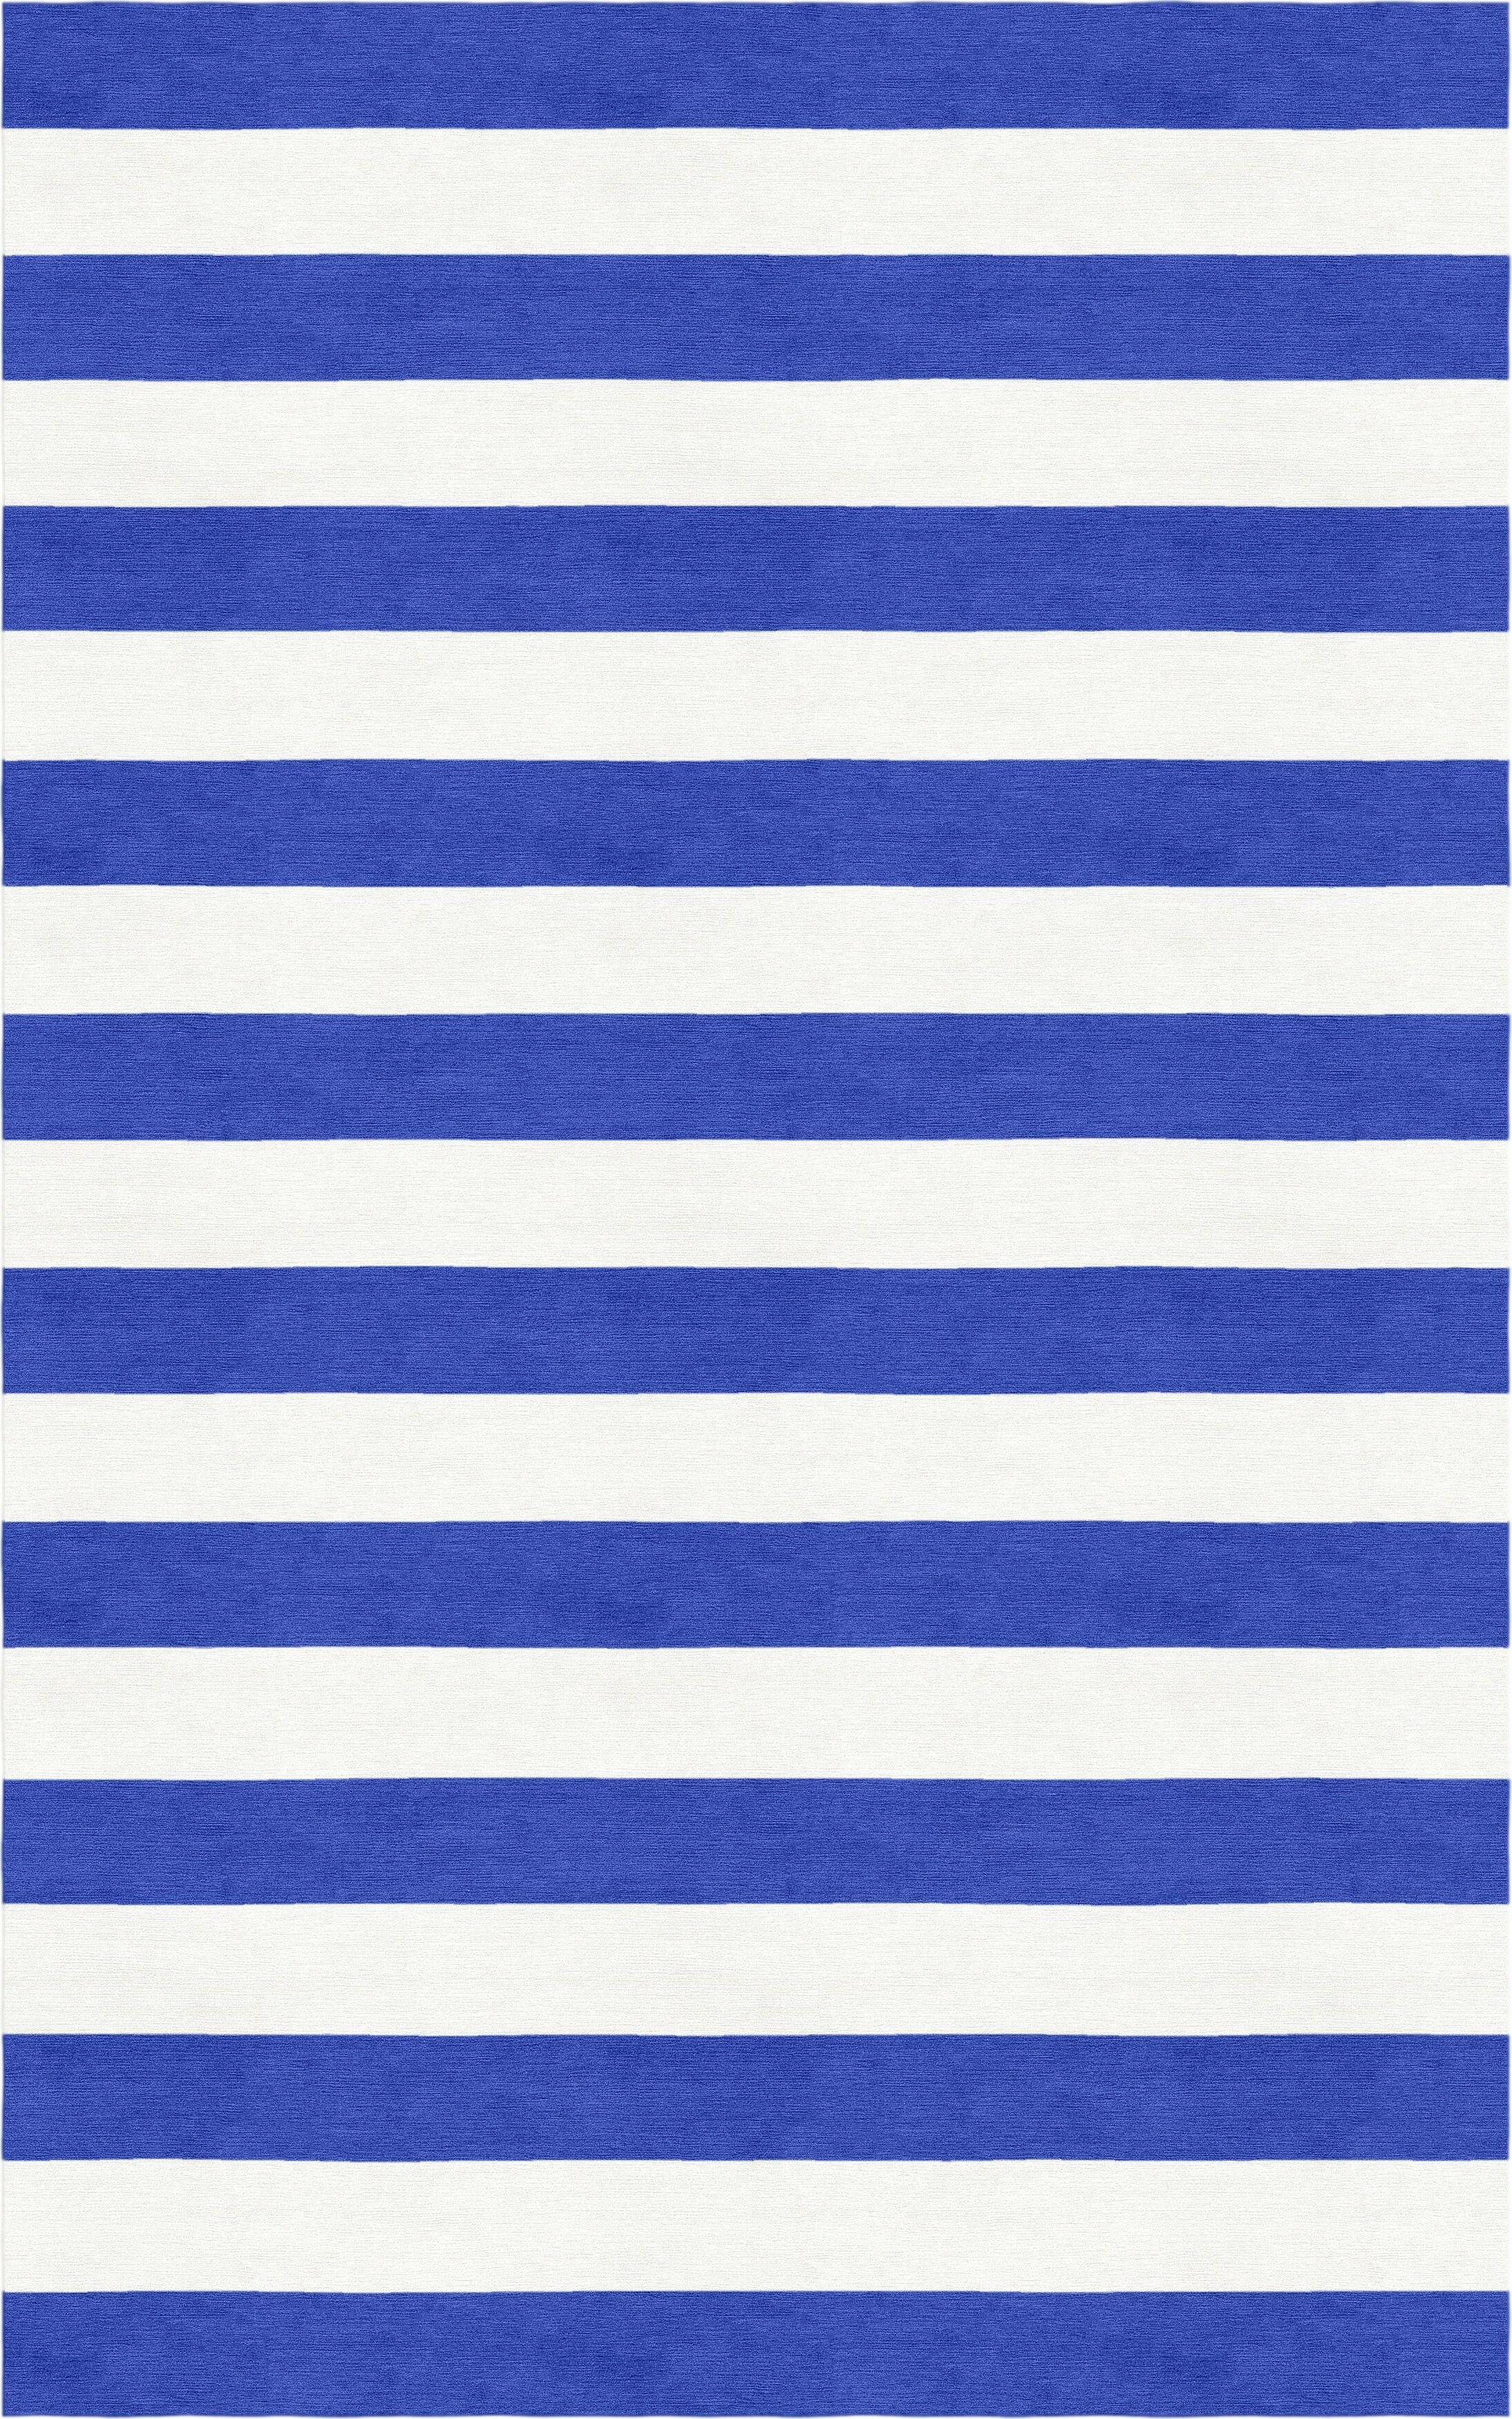 Hentish Stripe Hand-Tufted Wool Blue/White Area Rug Rug Size: Rectangle 9' x 12'